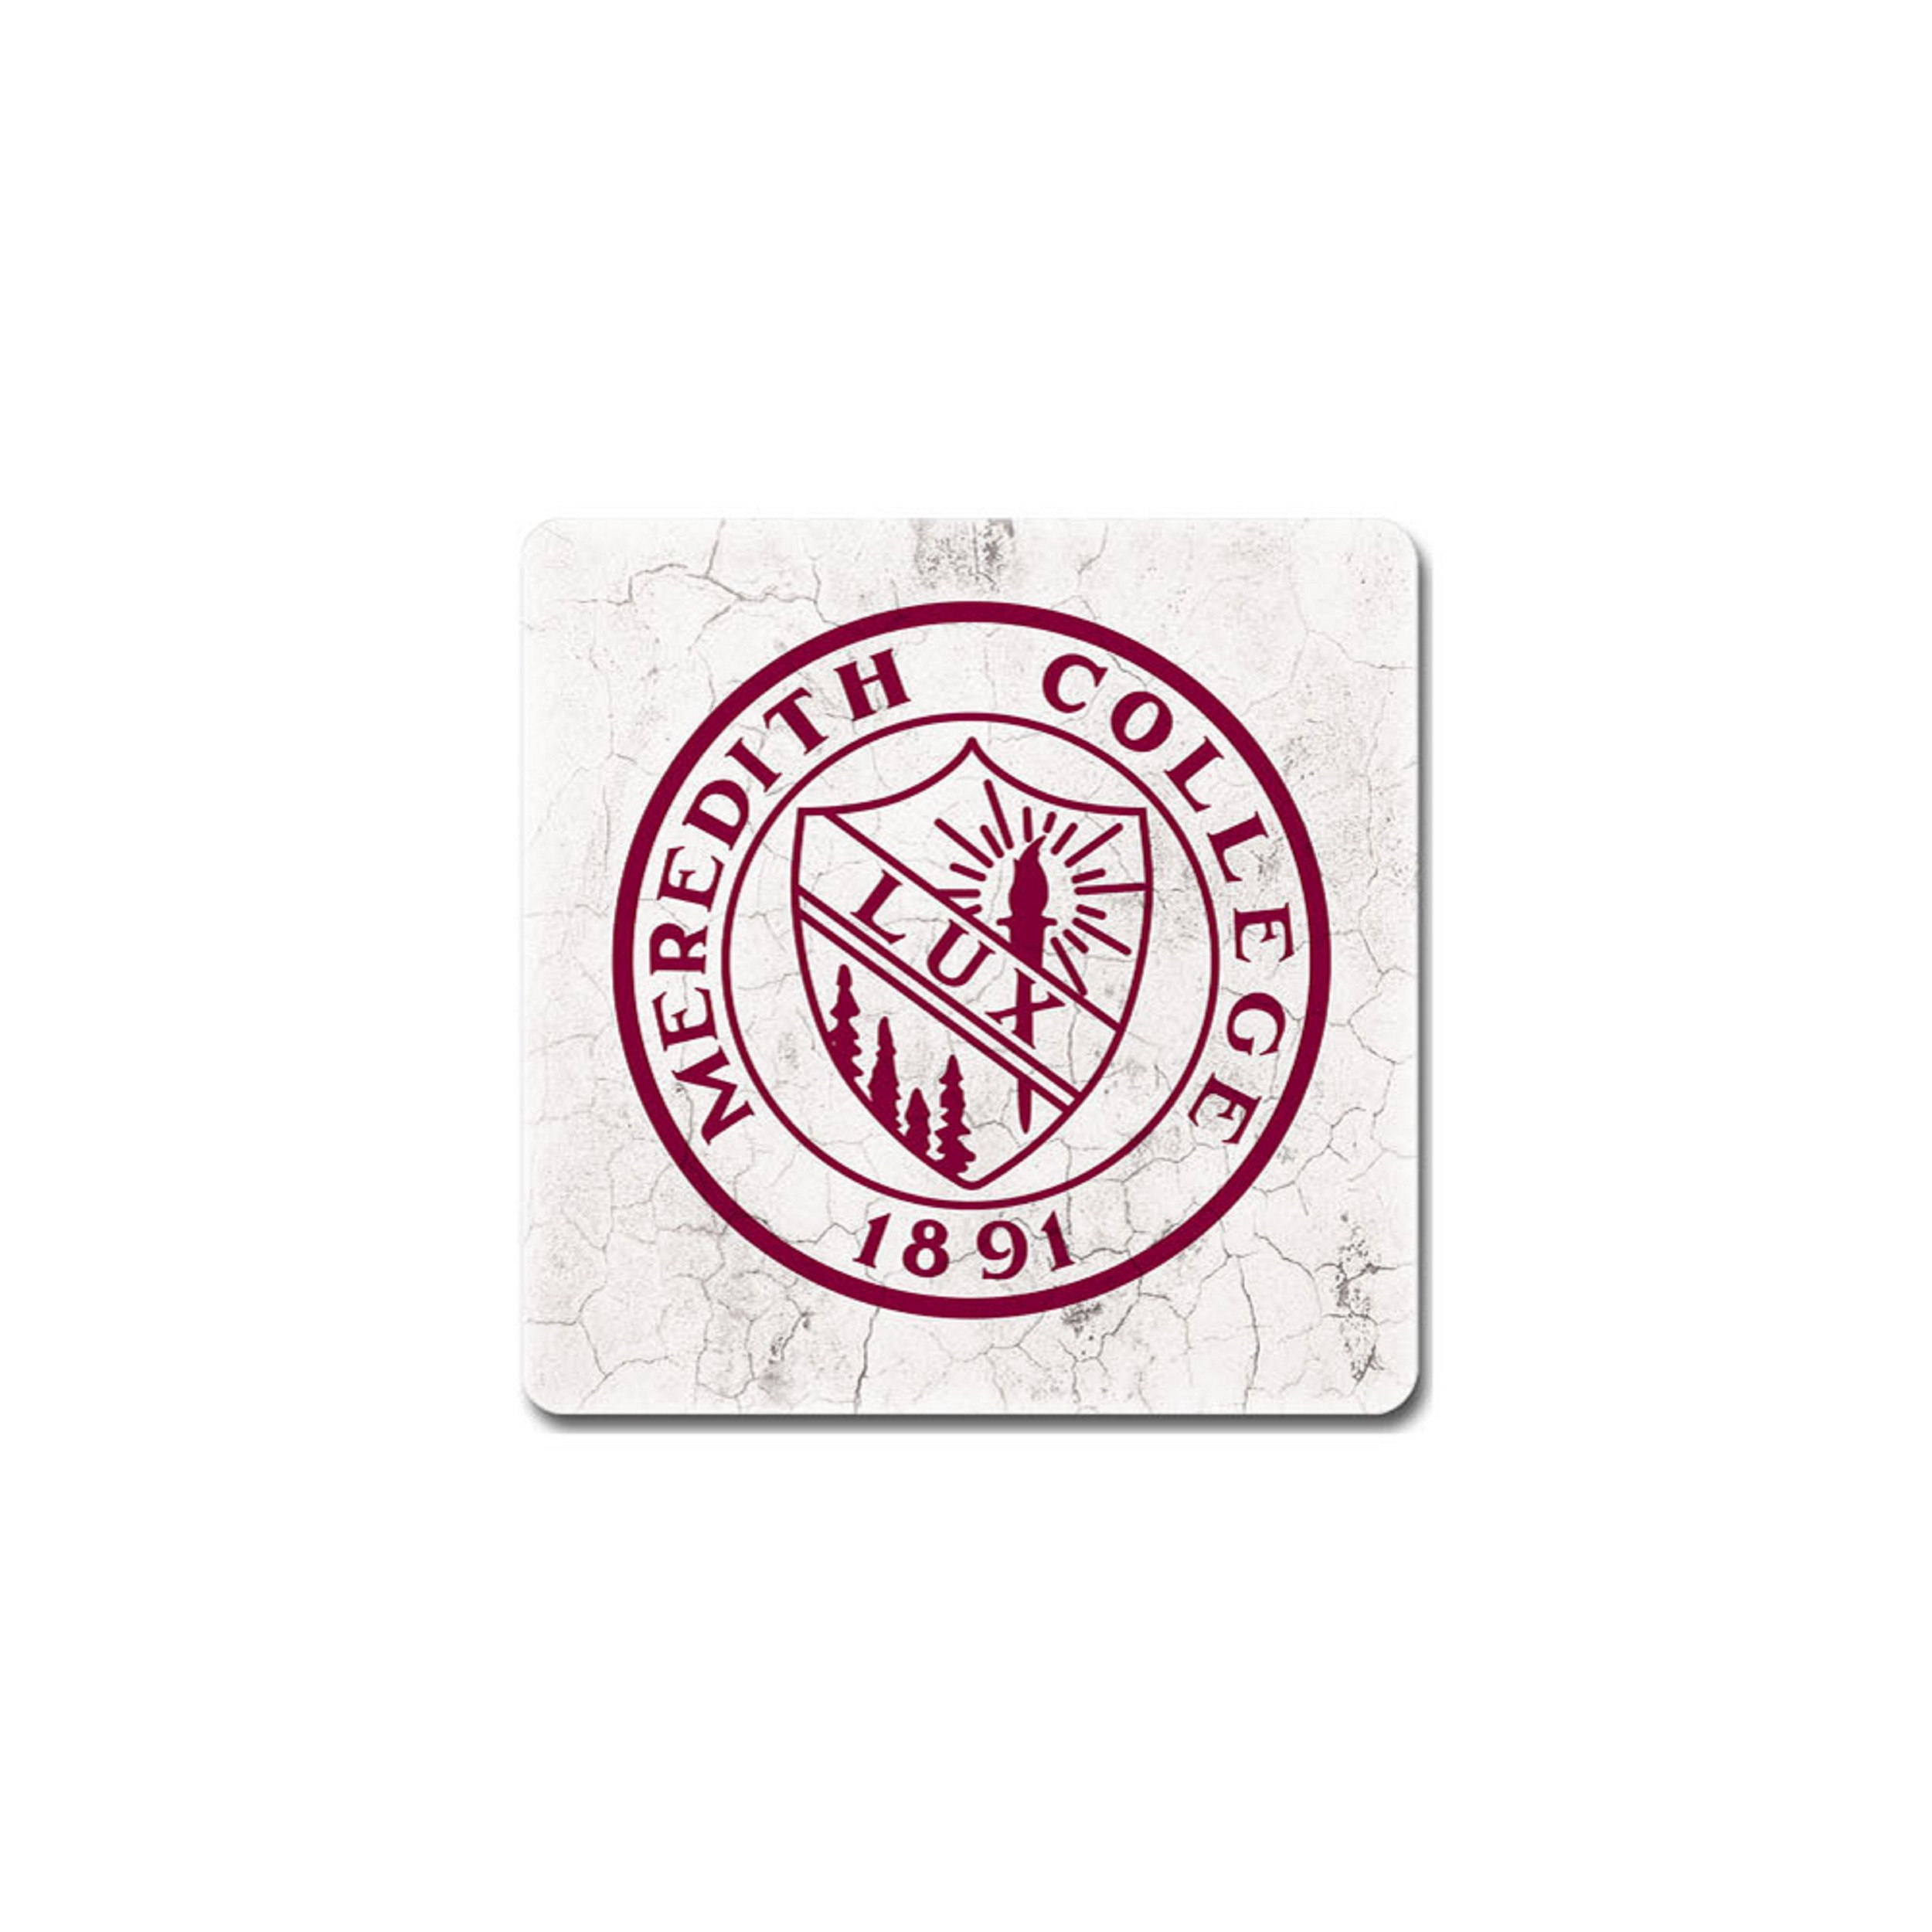 Image for the Single Coaster, White Background w/ Maroon Seal product